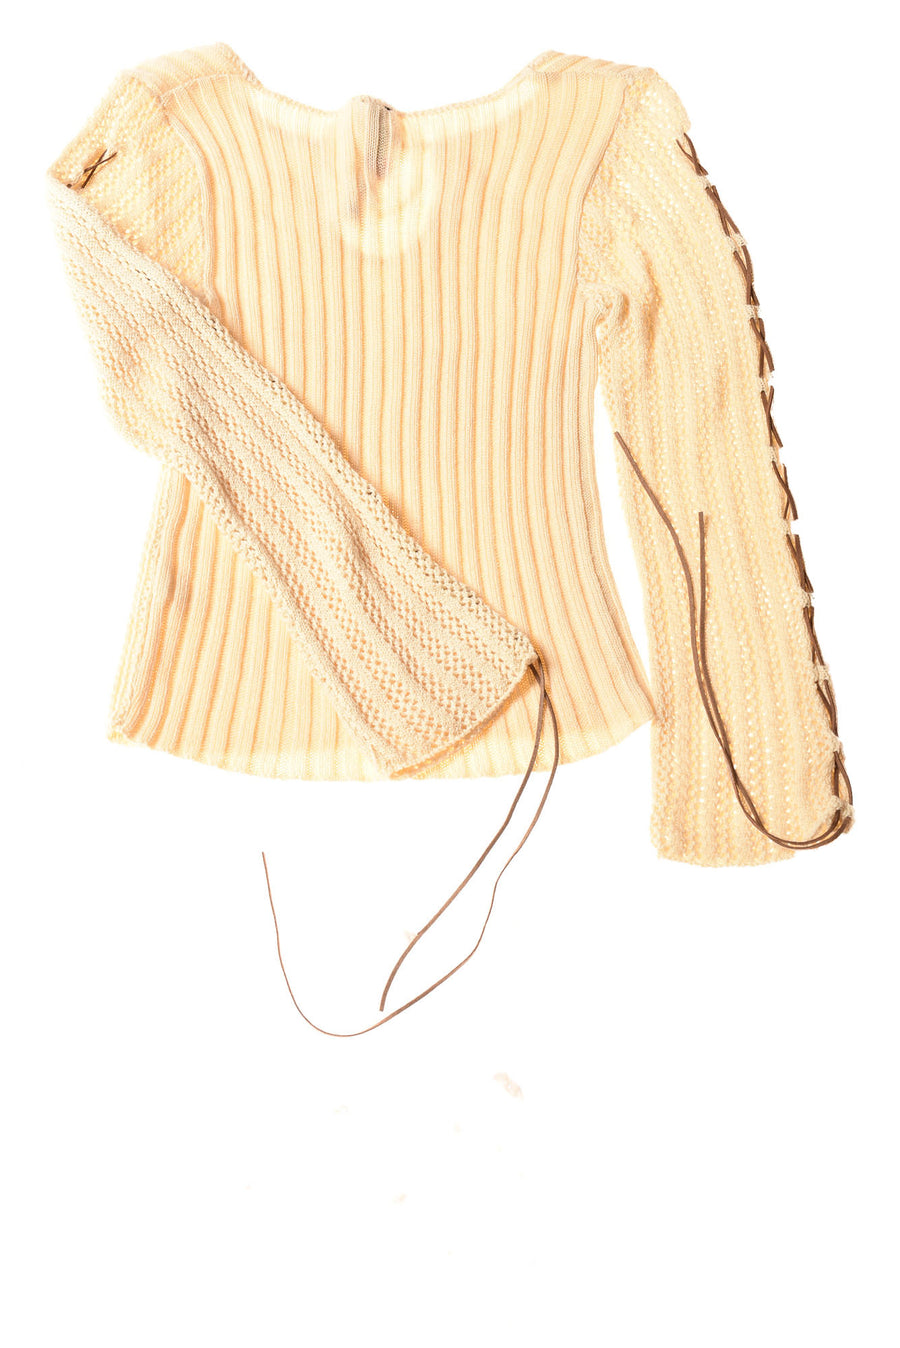 USED Say What Girl's Sweater Small Brown